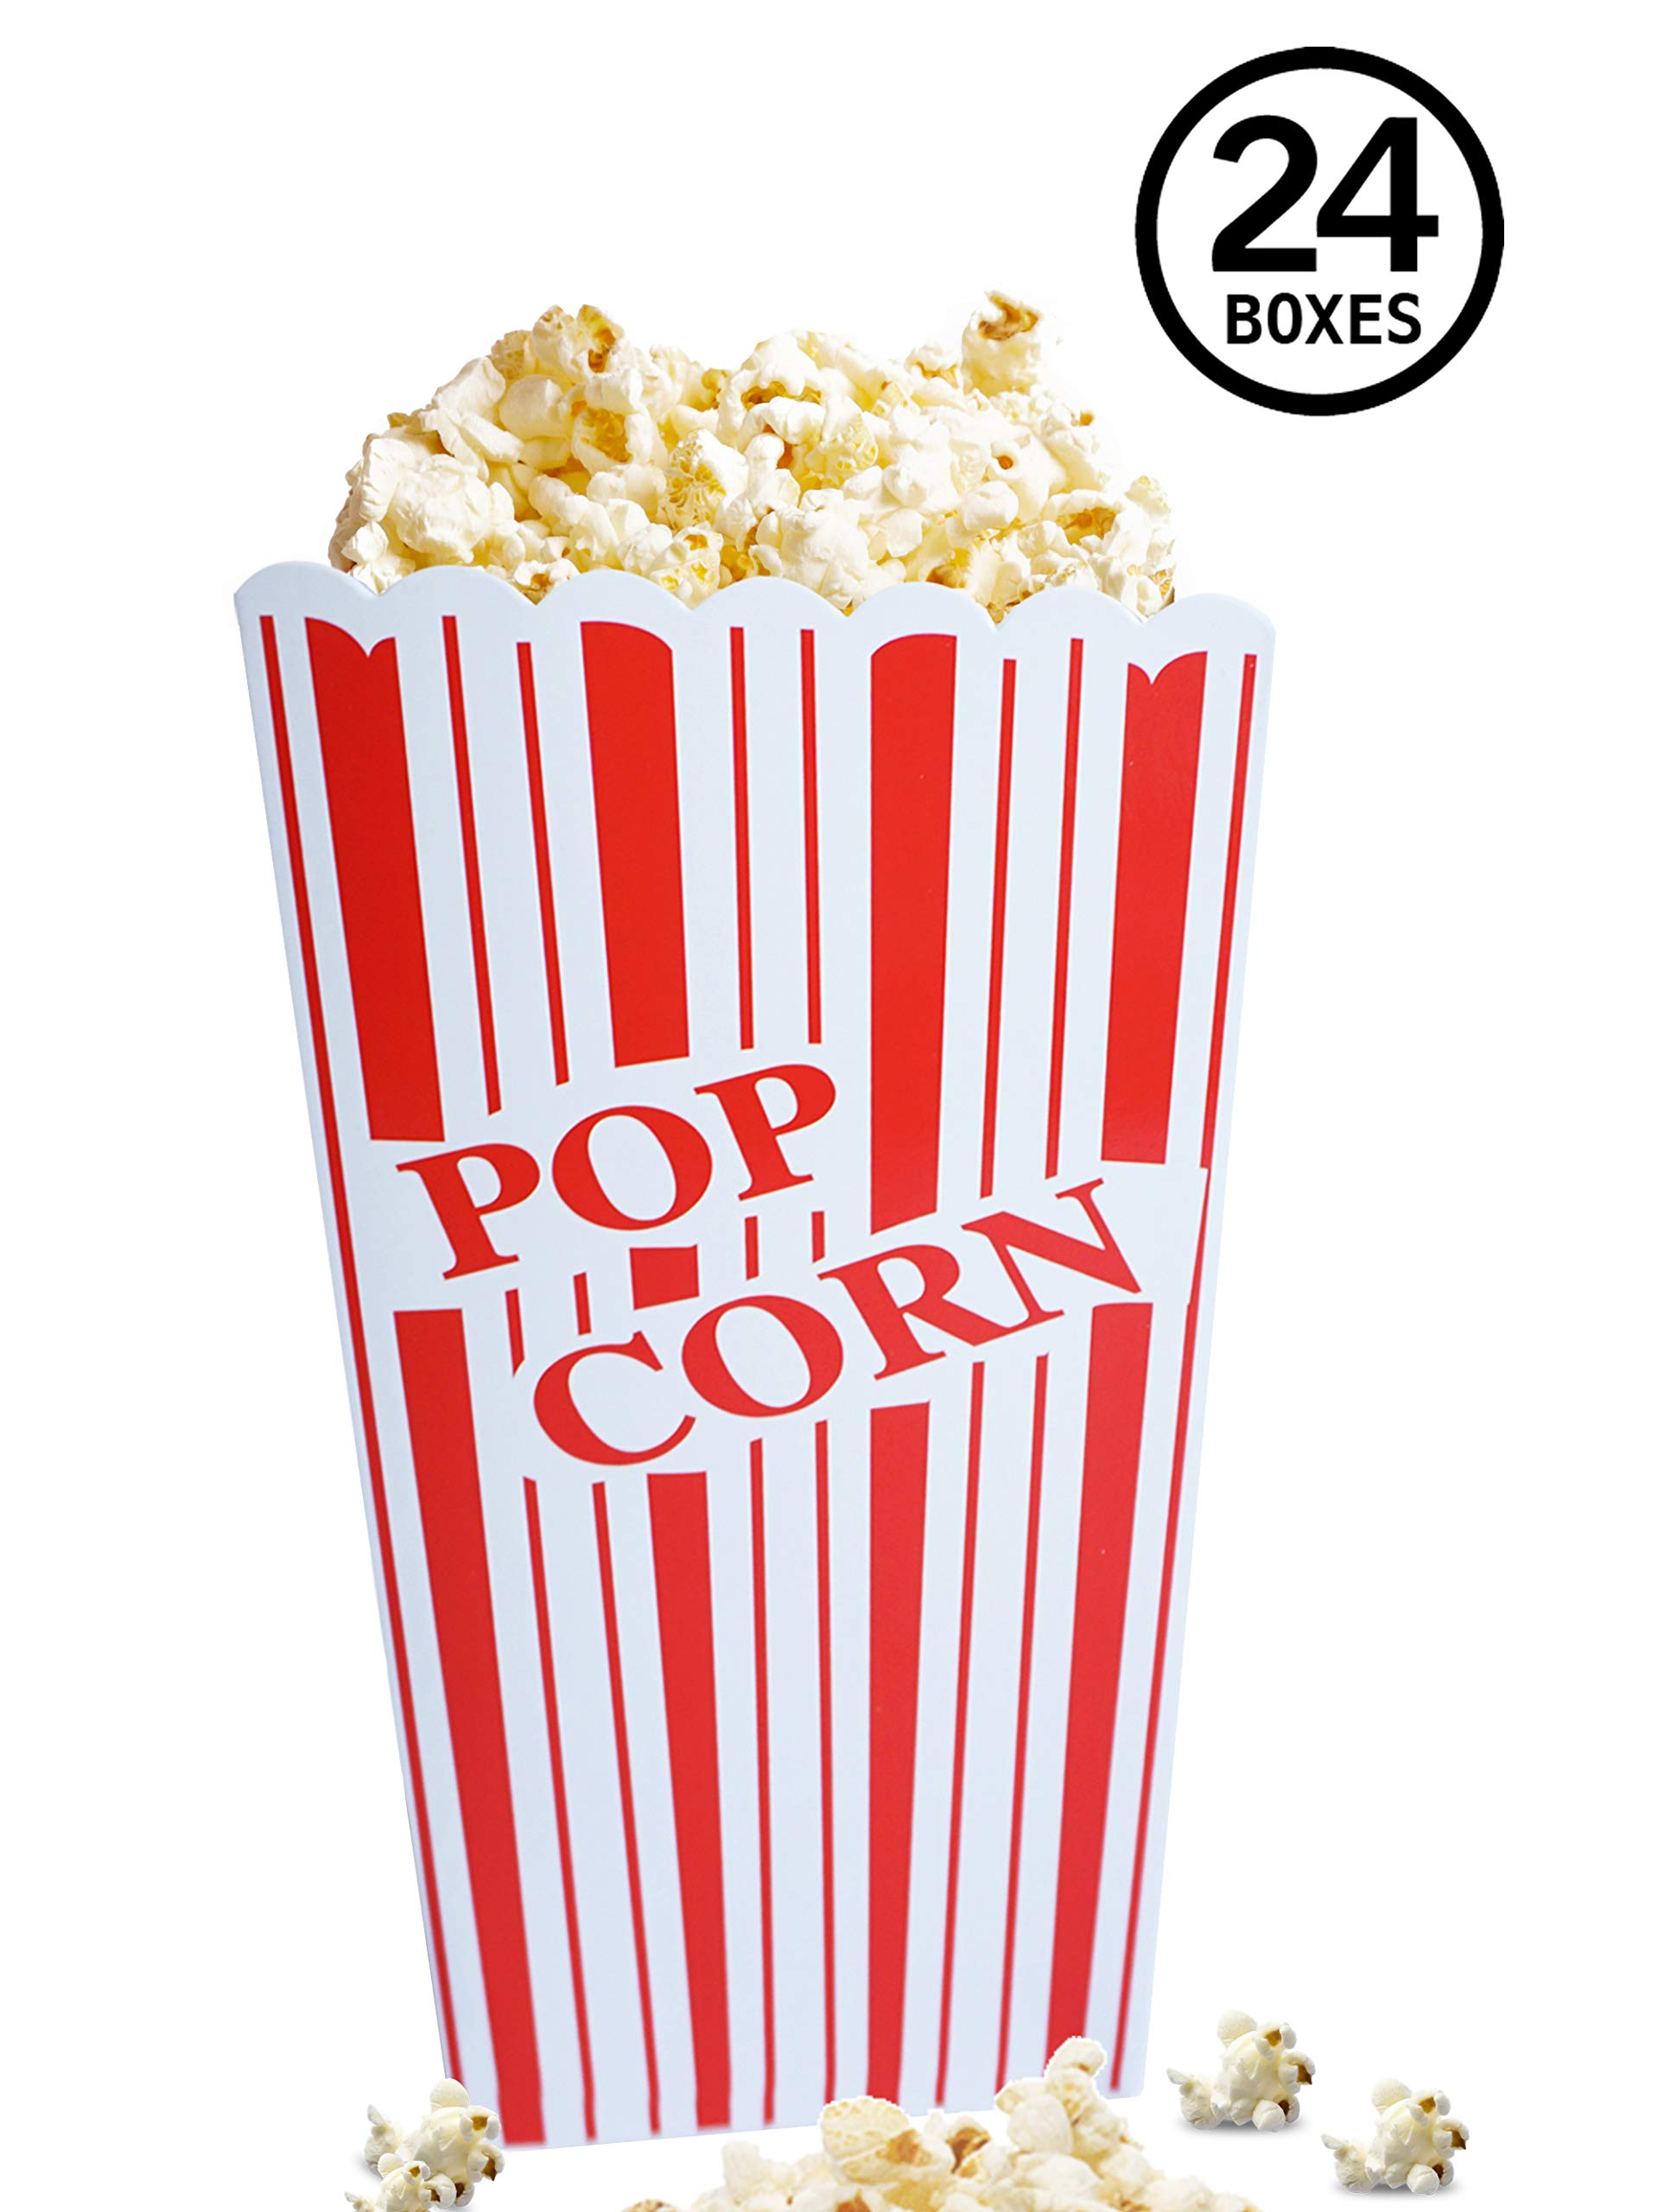 Red and White Popcorn Boxes for Party, Easy Assembling Popcorn Holders from Cestash, Pack of 24, 350 gsm Trendy Paper Popcorn Bags for Parties, Picnics, Movie Night by Cestash